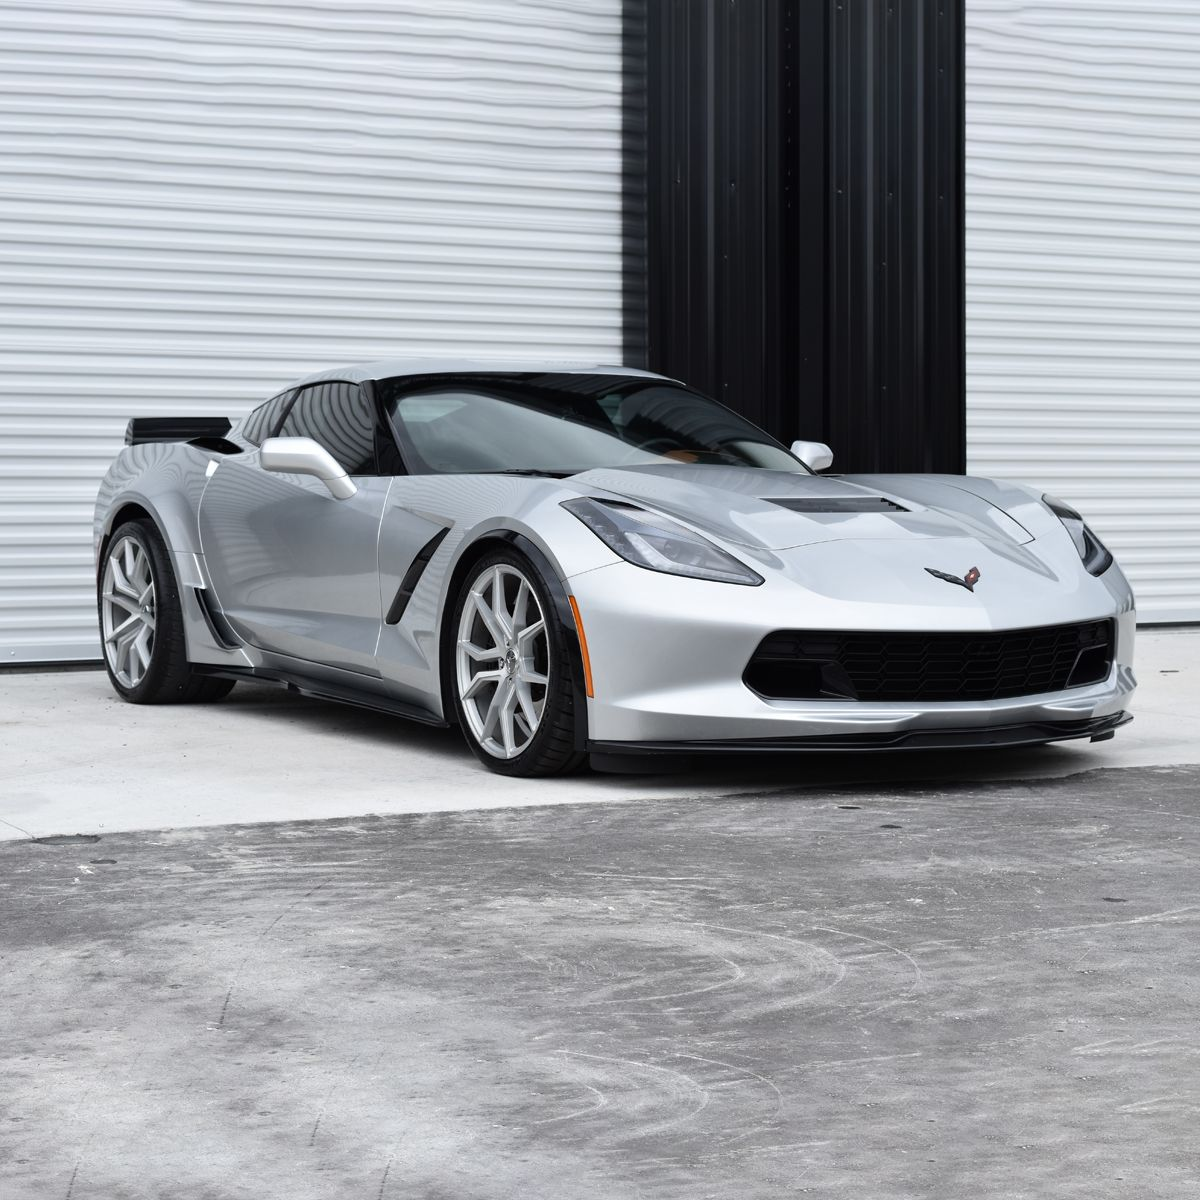 Gm Rear Widebody Coupe Z06 Scoop W Rear Bumper Chevy Corvette